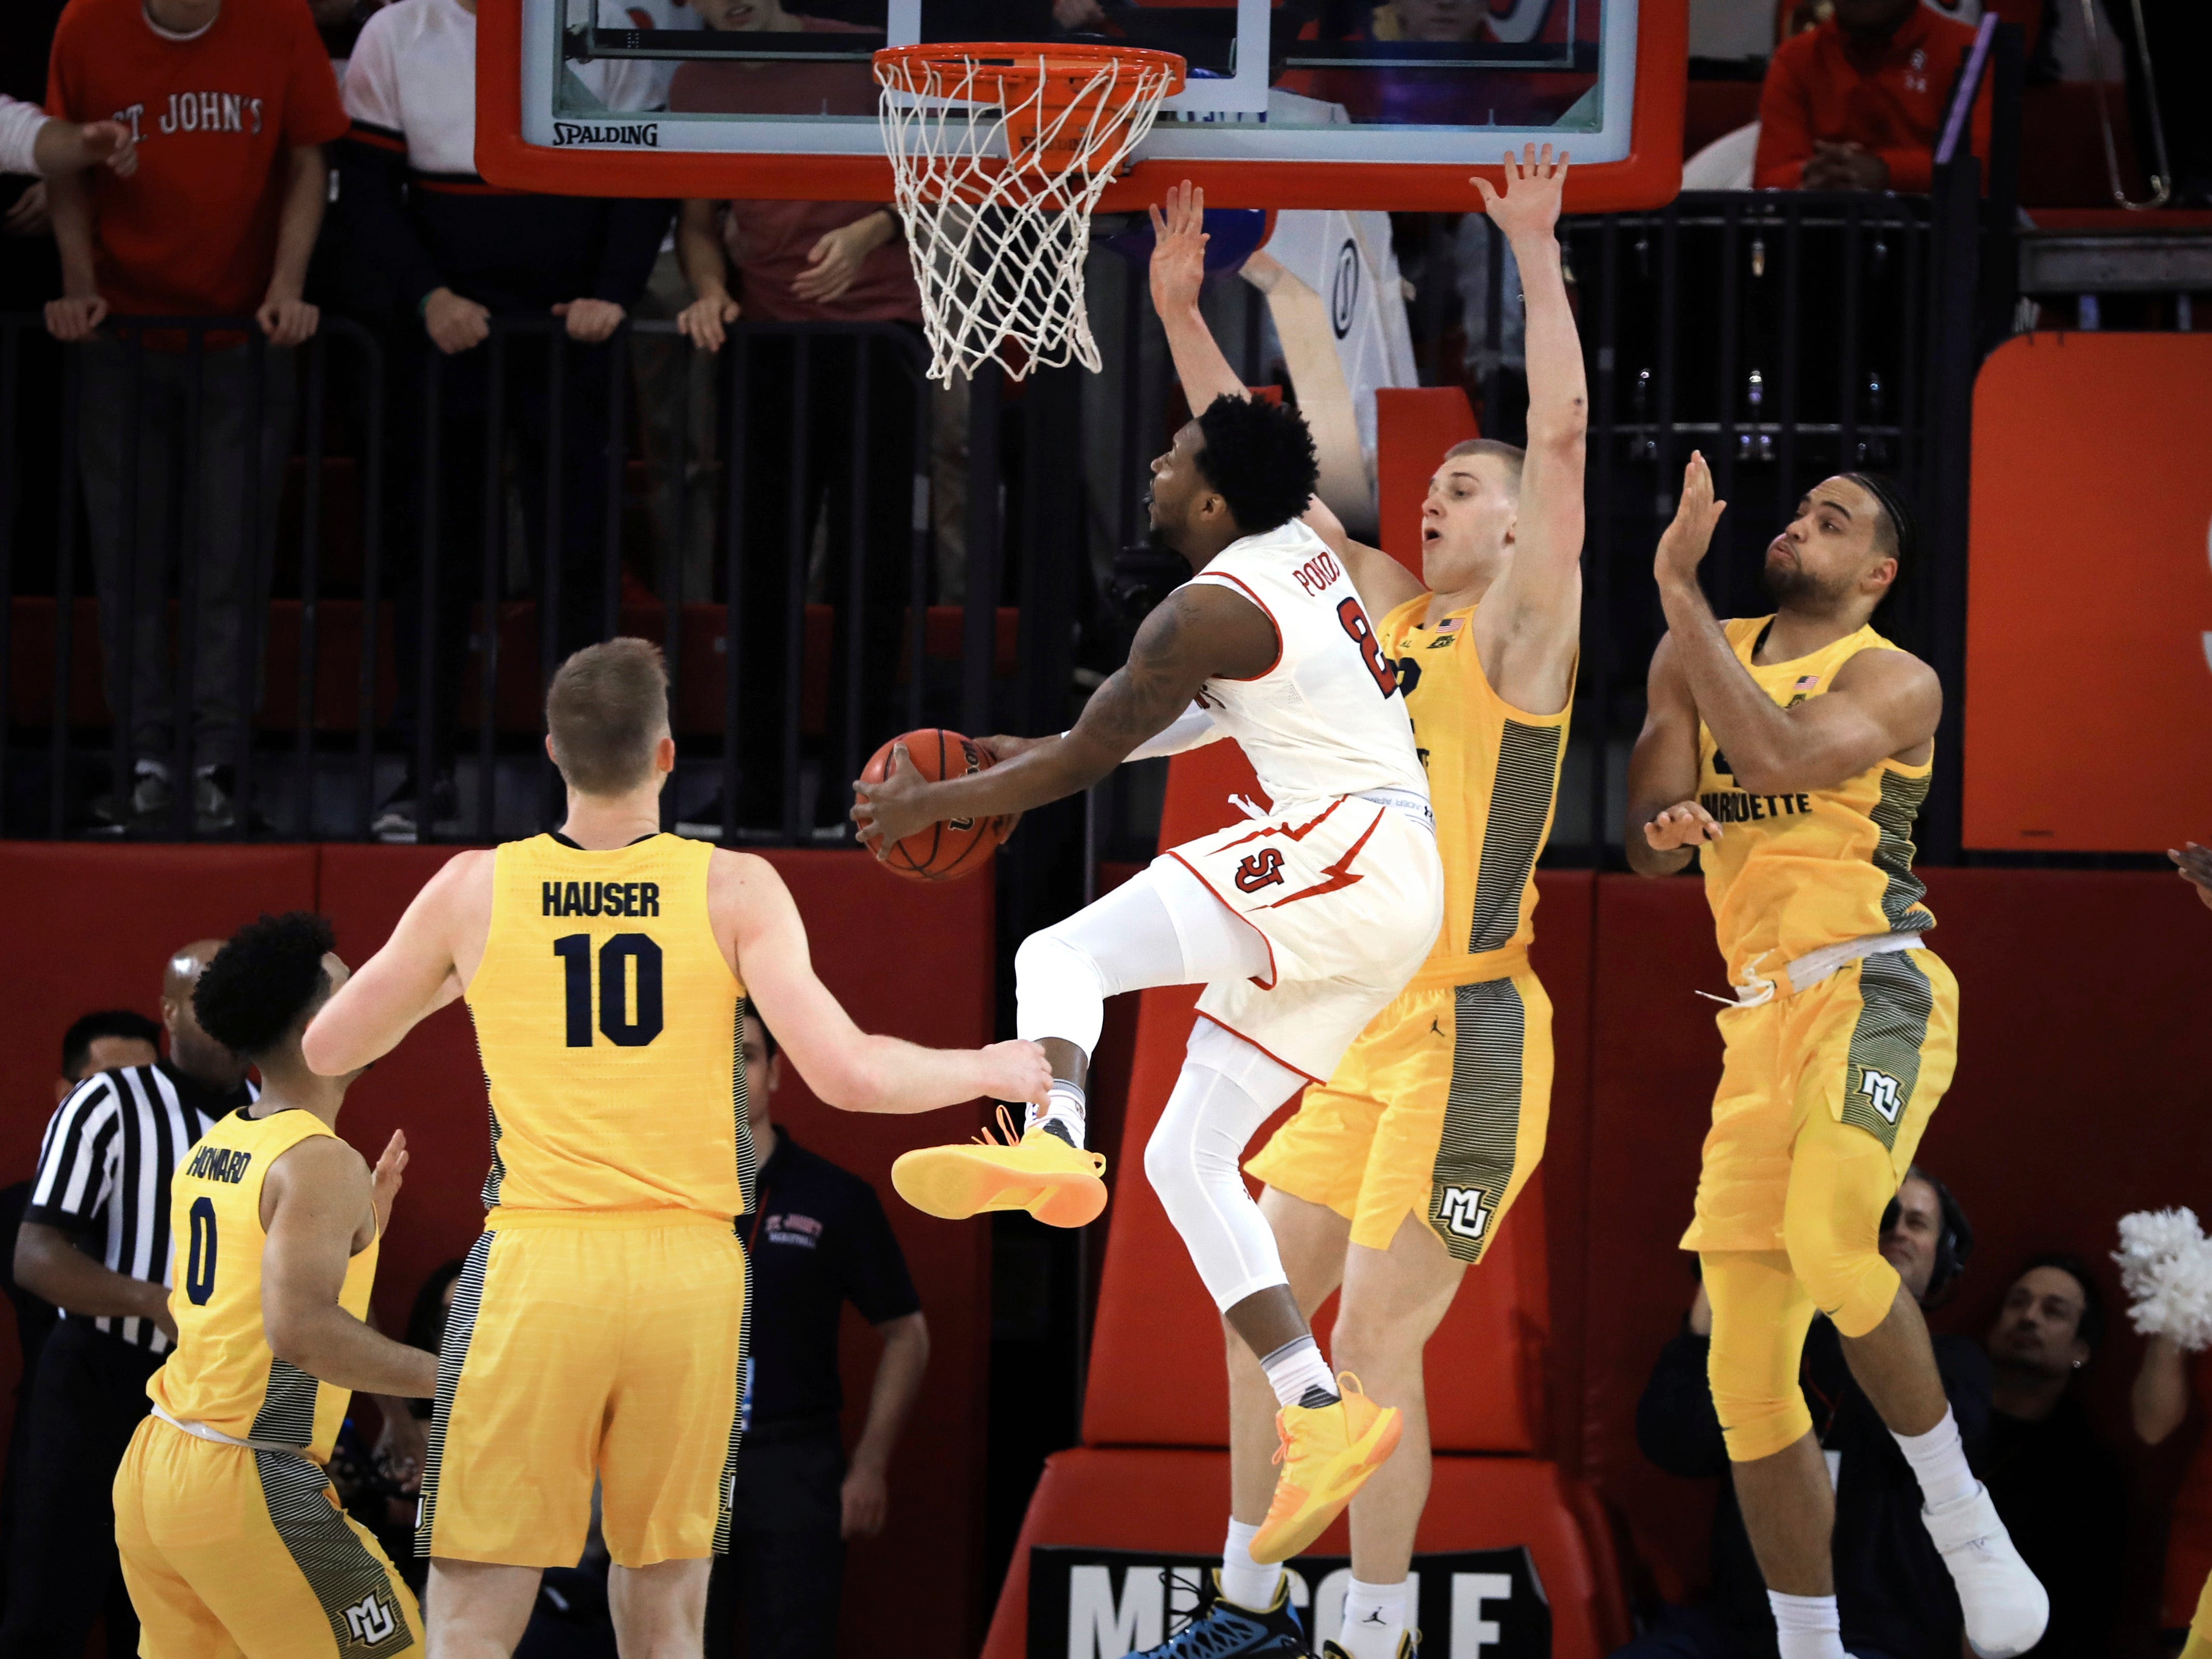 St. John's guard Shamorie Ponds goes up for a layup during the first half of an NCAA college basketball game against Marquette on Tuesday,  Jan. 1, 2019, in New York. (AP Photo/Kevin Hagen). ORG XMIT: NYKH102